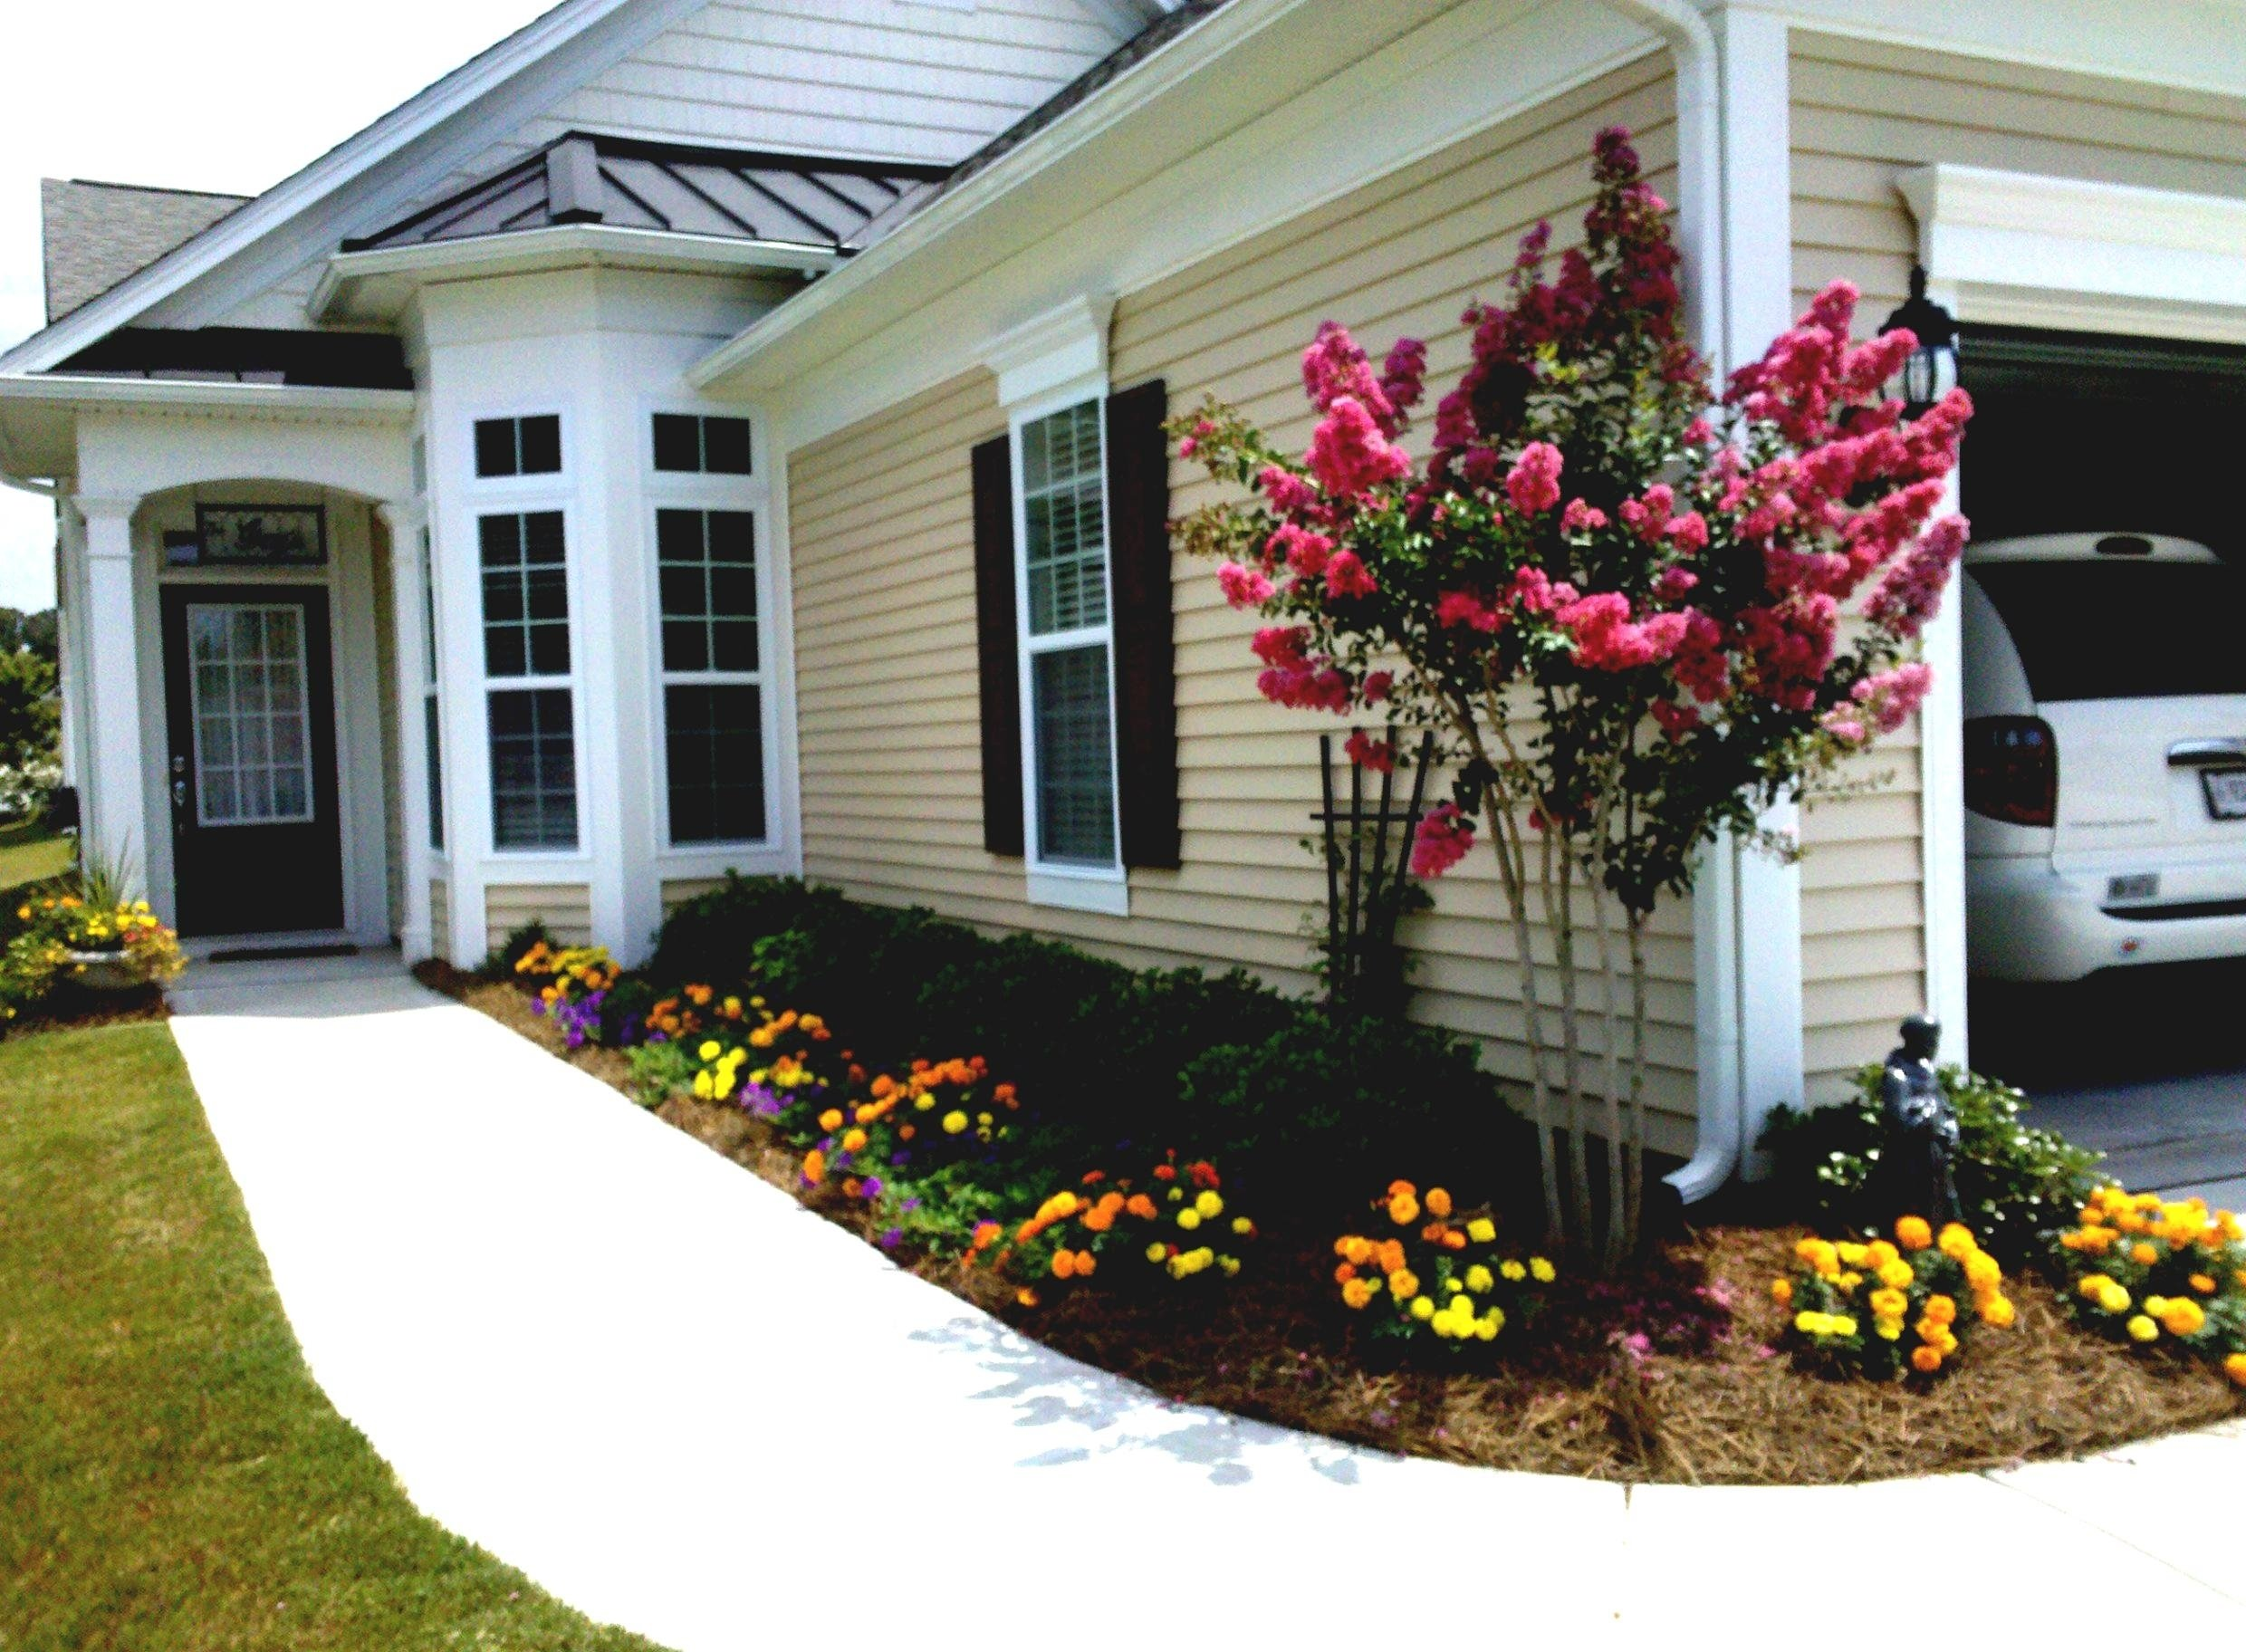 10 Stylish Simple Front Yard Landscaping Ideas On A Budget front yard ideas on a budget amys office